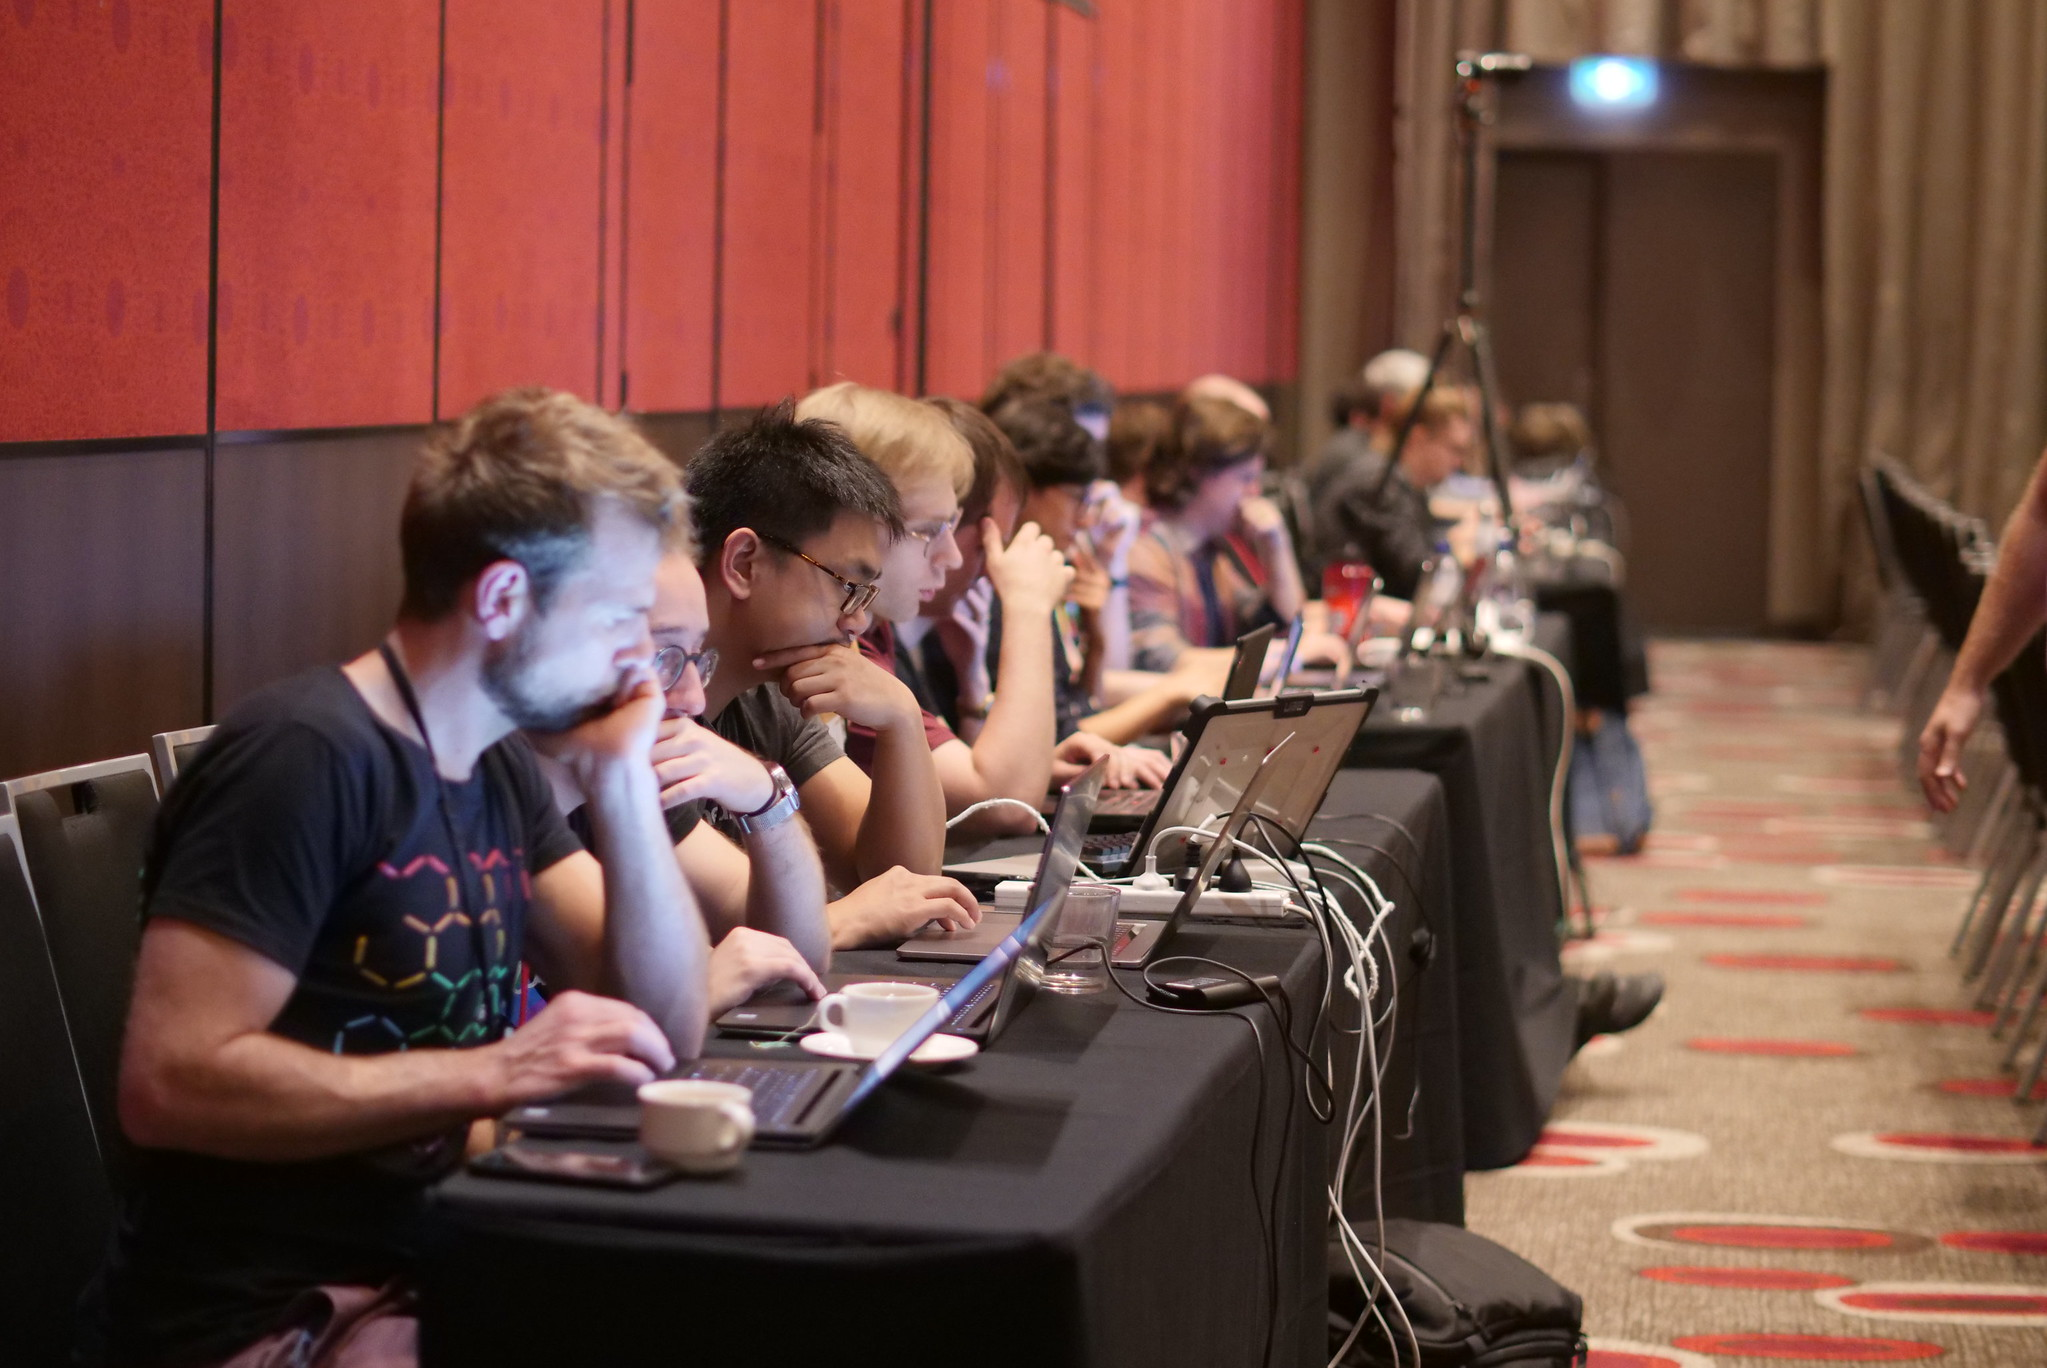 Attendees in a Lambda Jam workshop working on their laptops